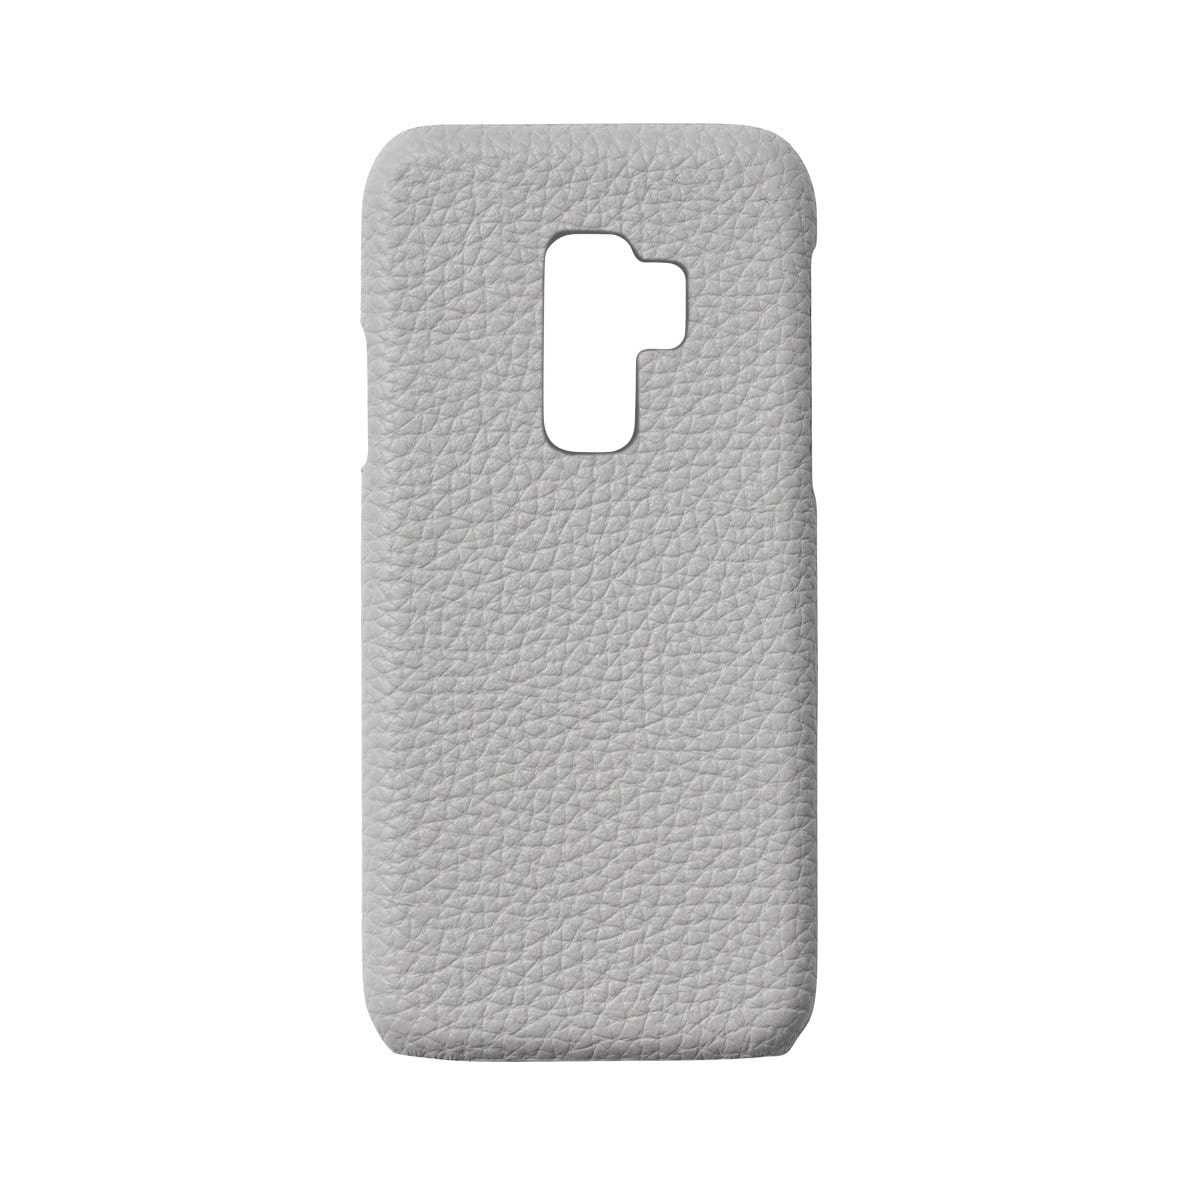 Parma Grey Phone Case (Samsung 9+)